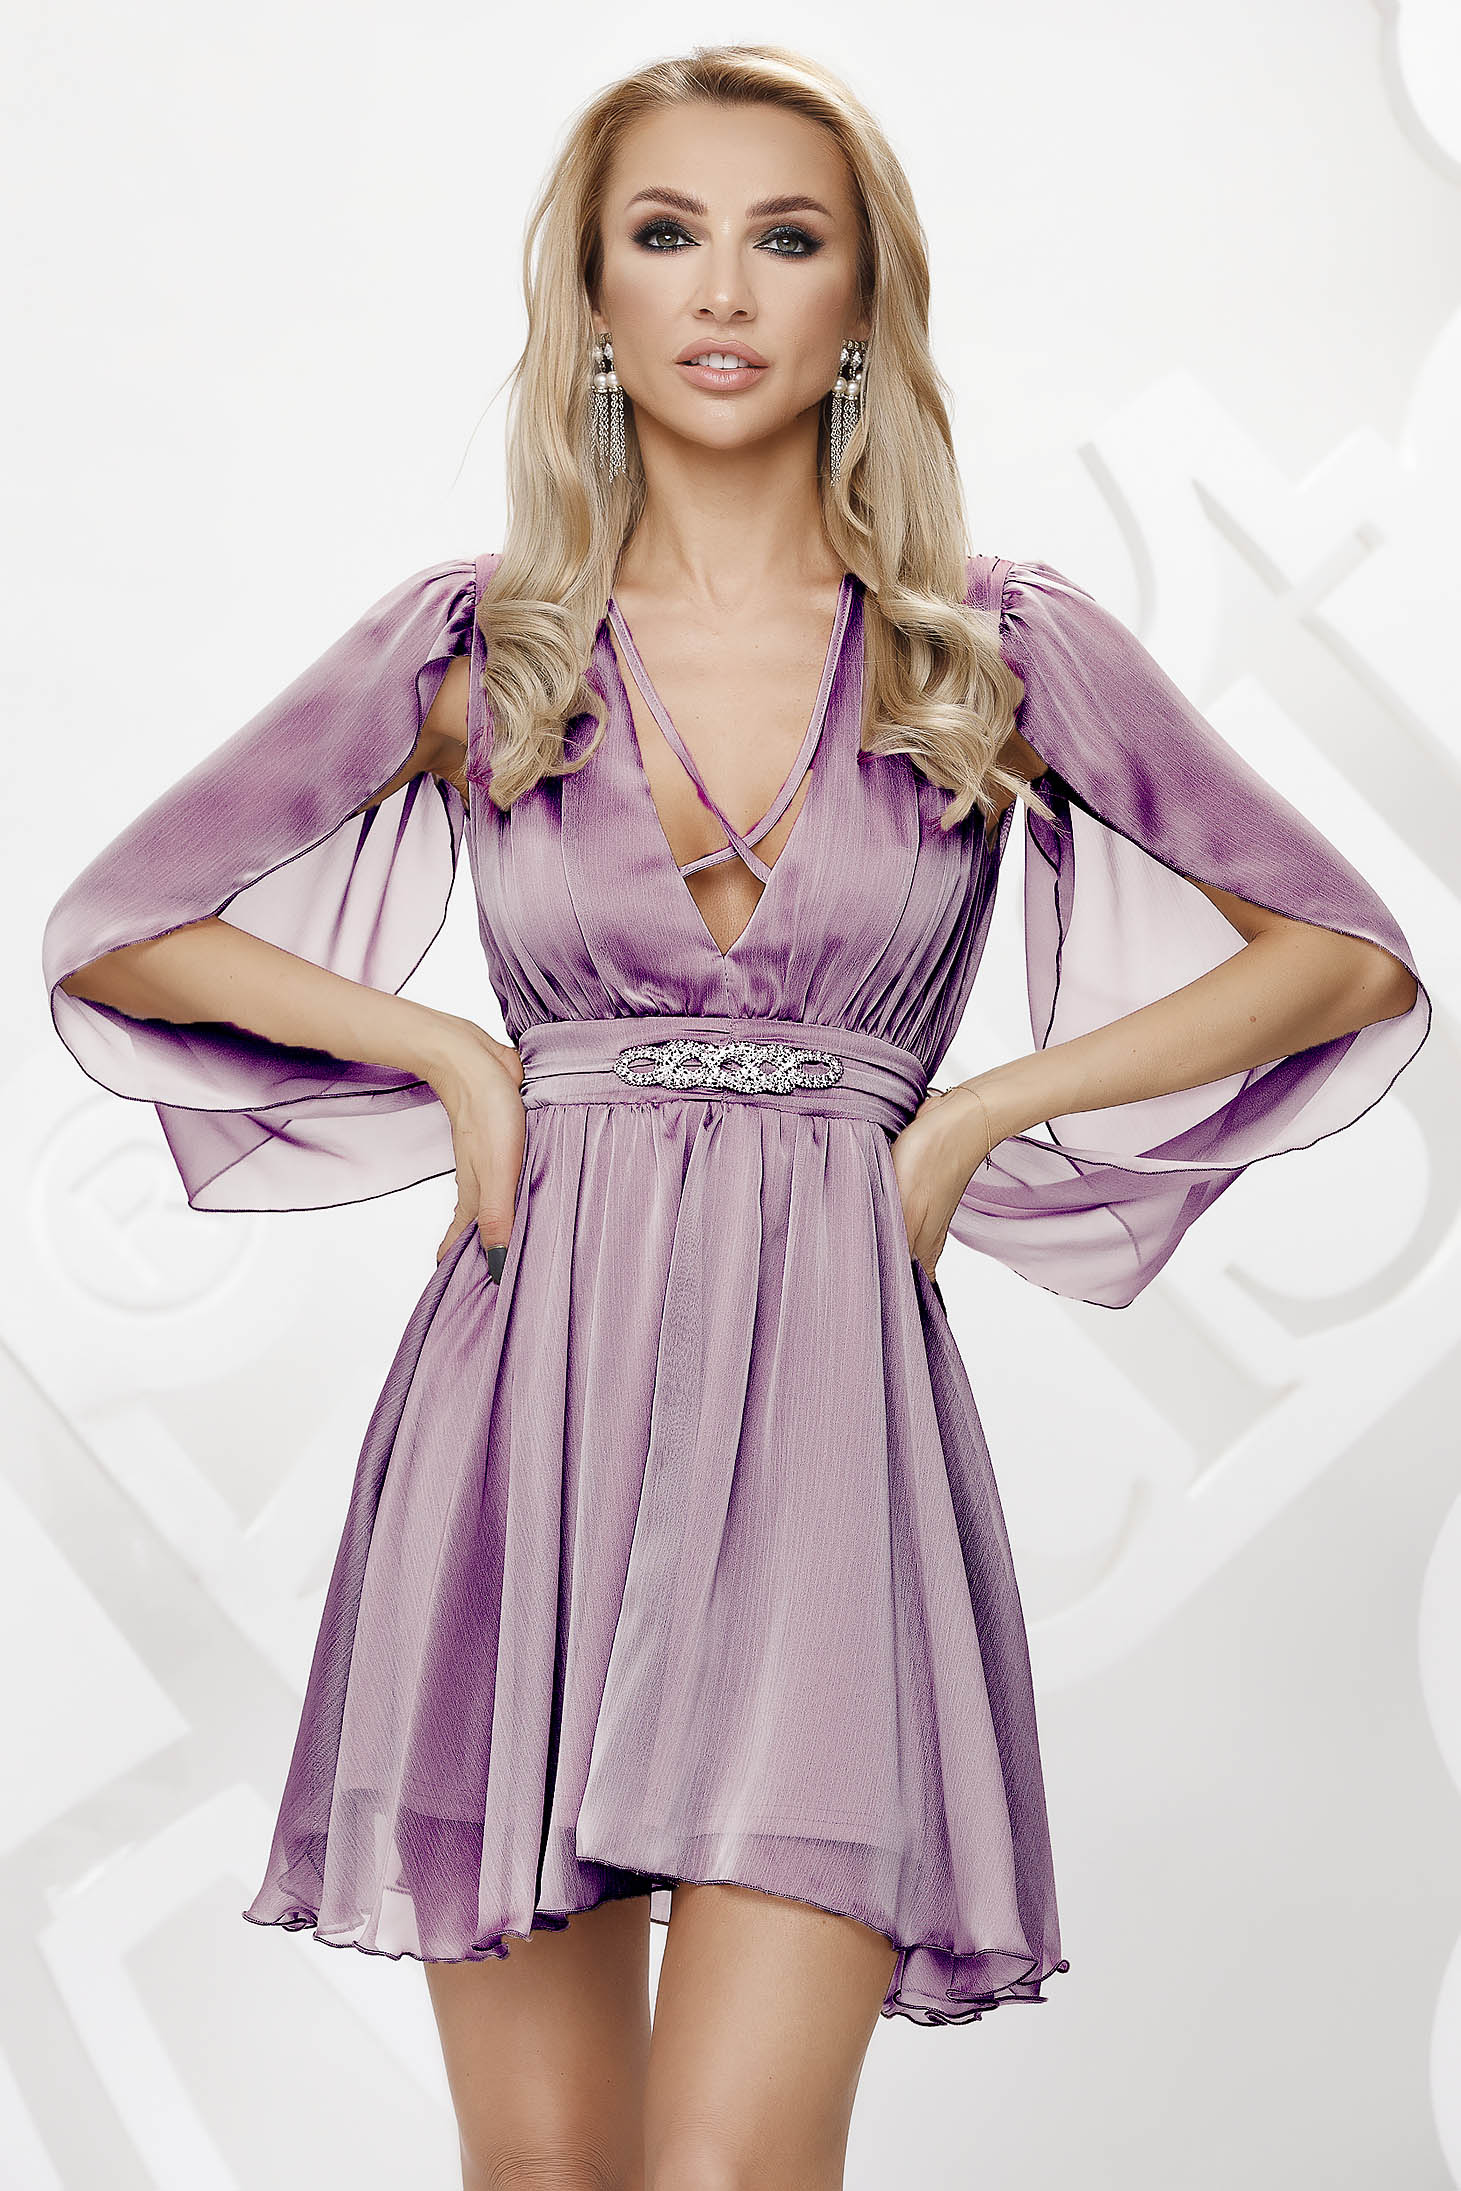 Lightpurple dress from veil fabric occasional cloche transparent chiffon fabric with embellished accessories